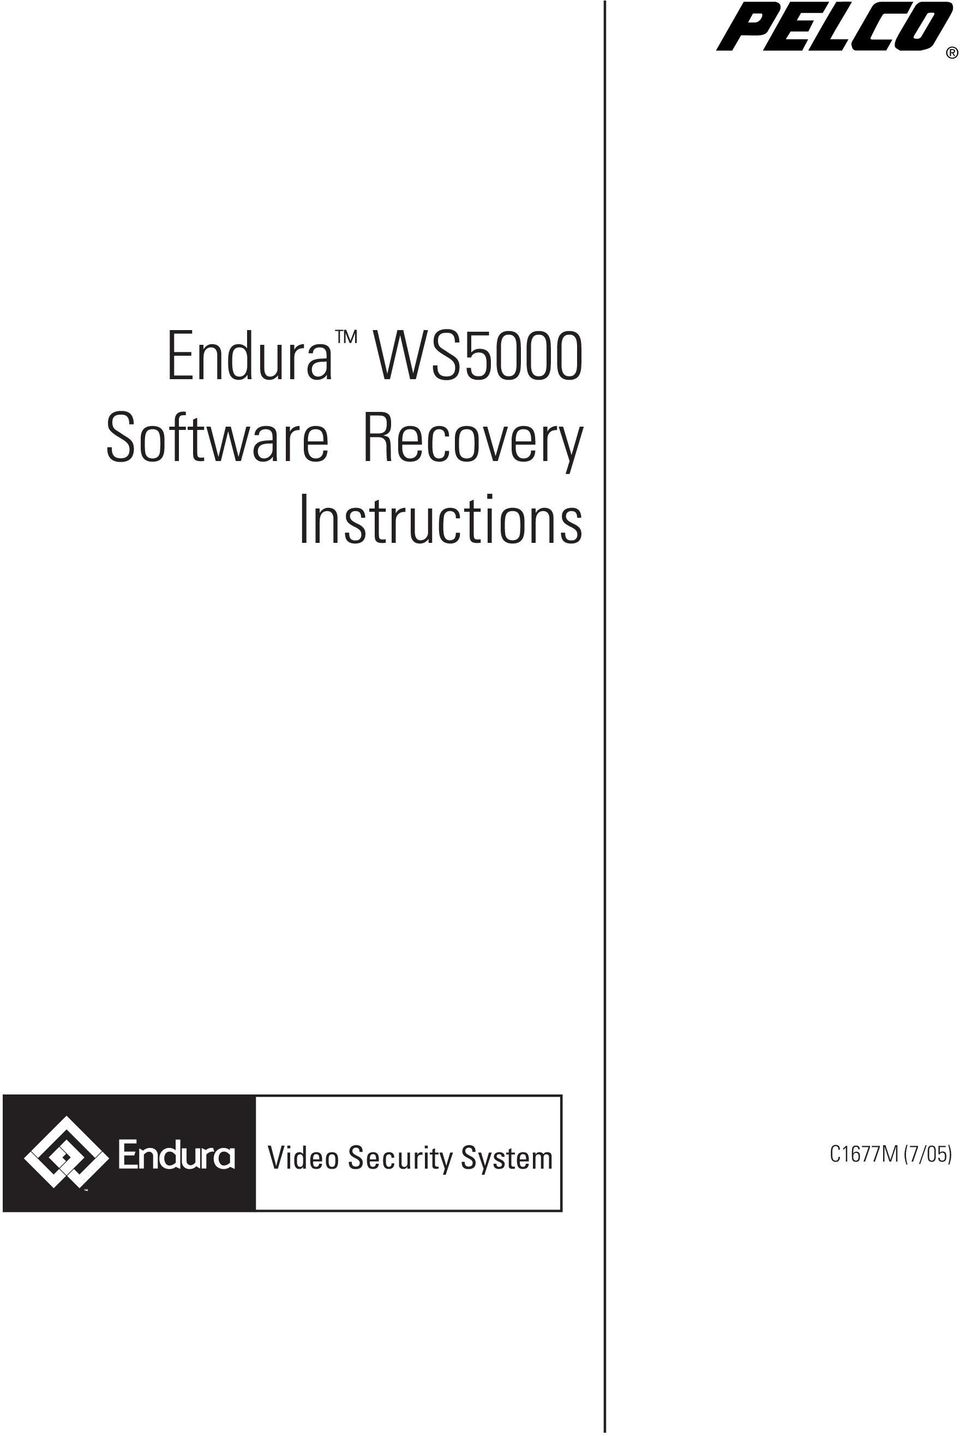 Endura WS5000 Software Recovery Instructions - PDF